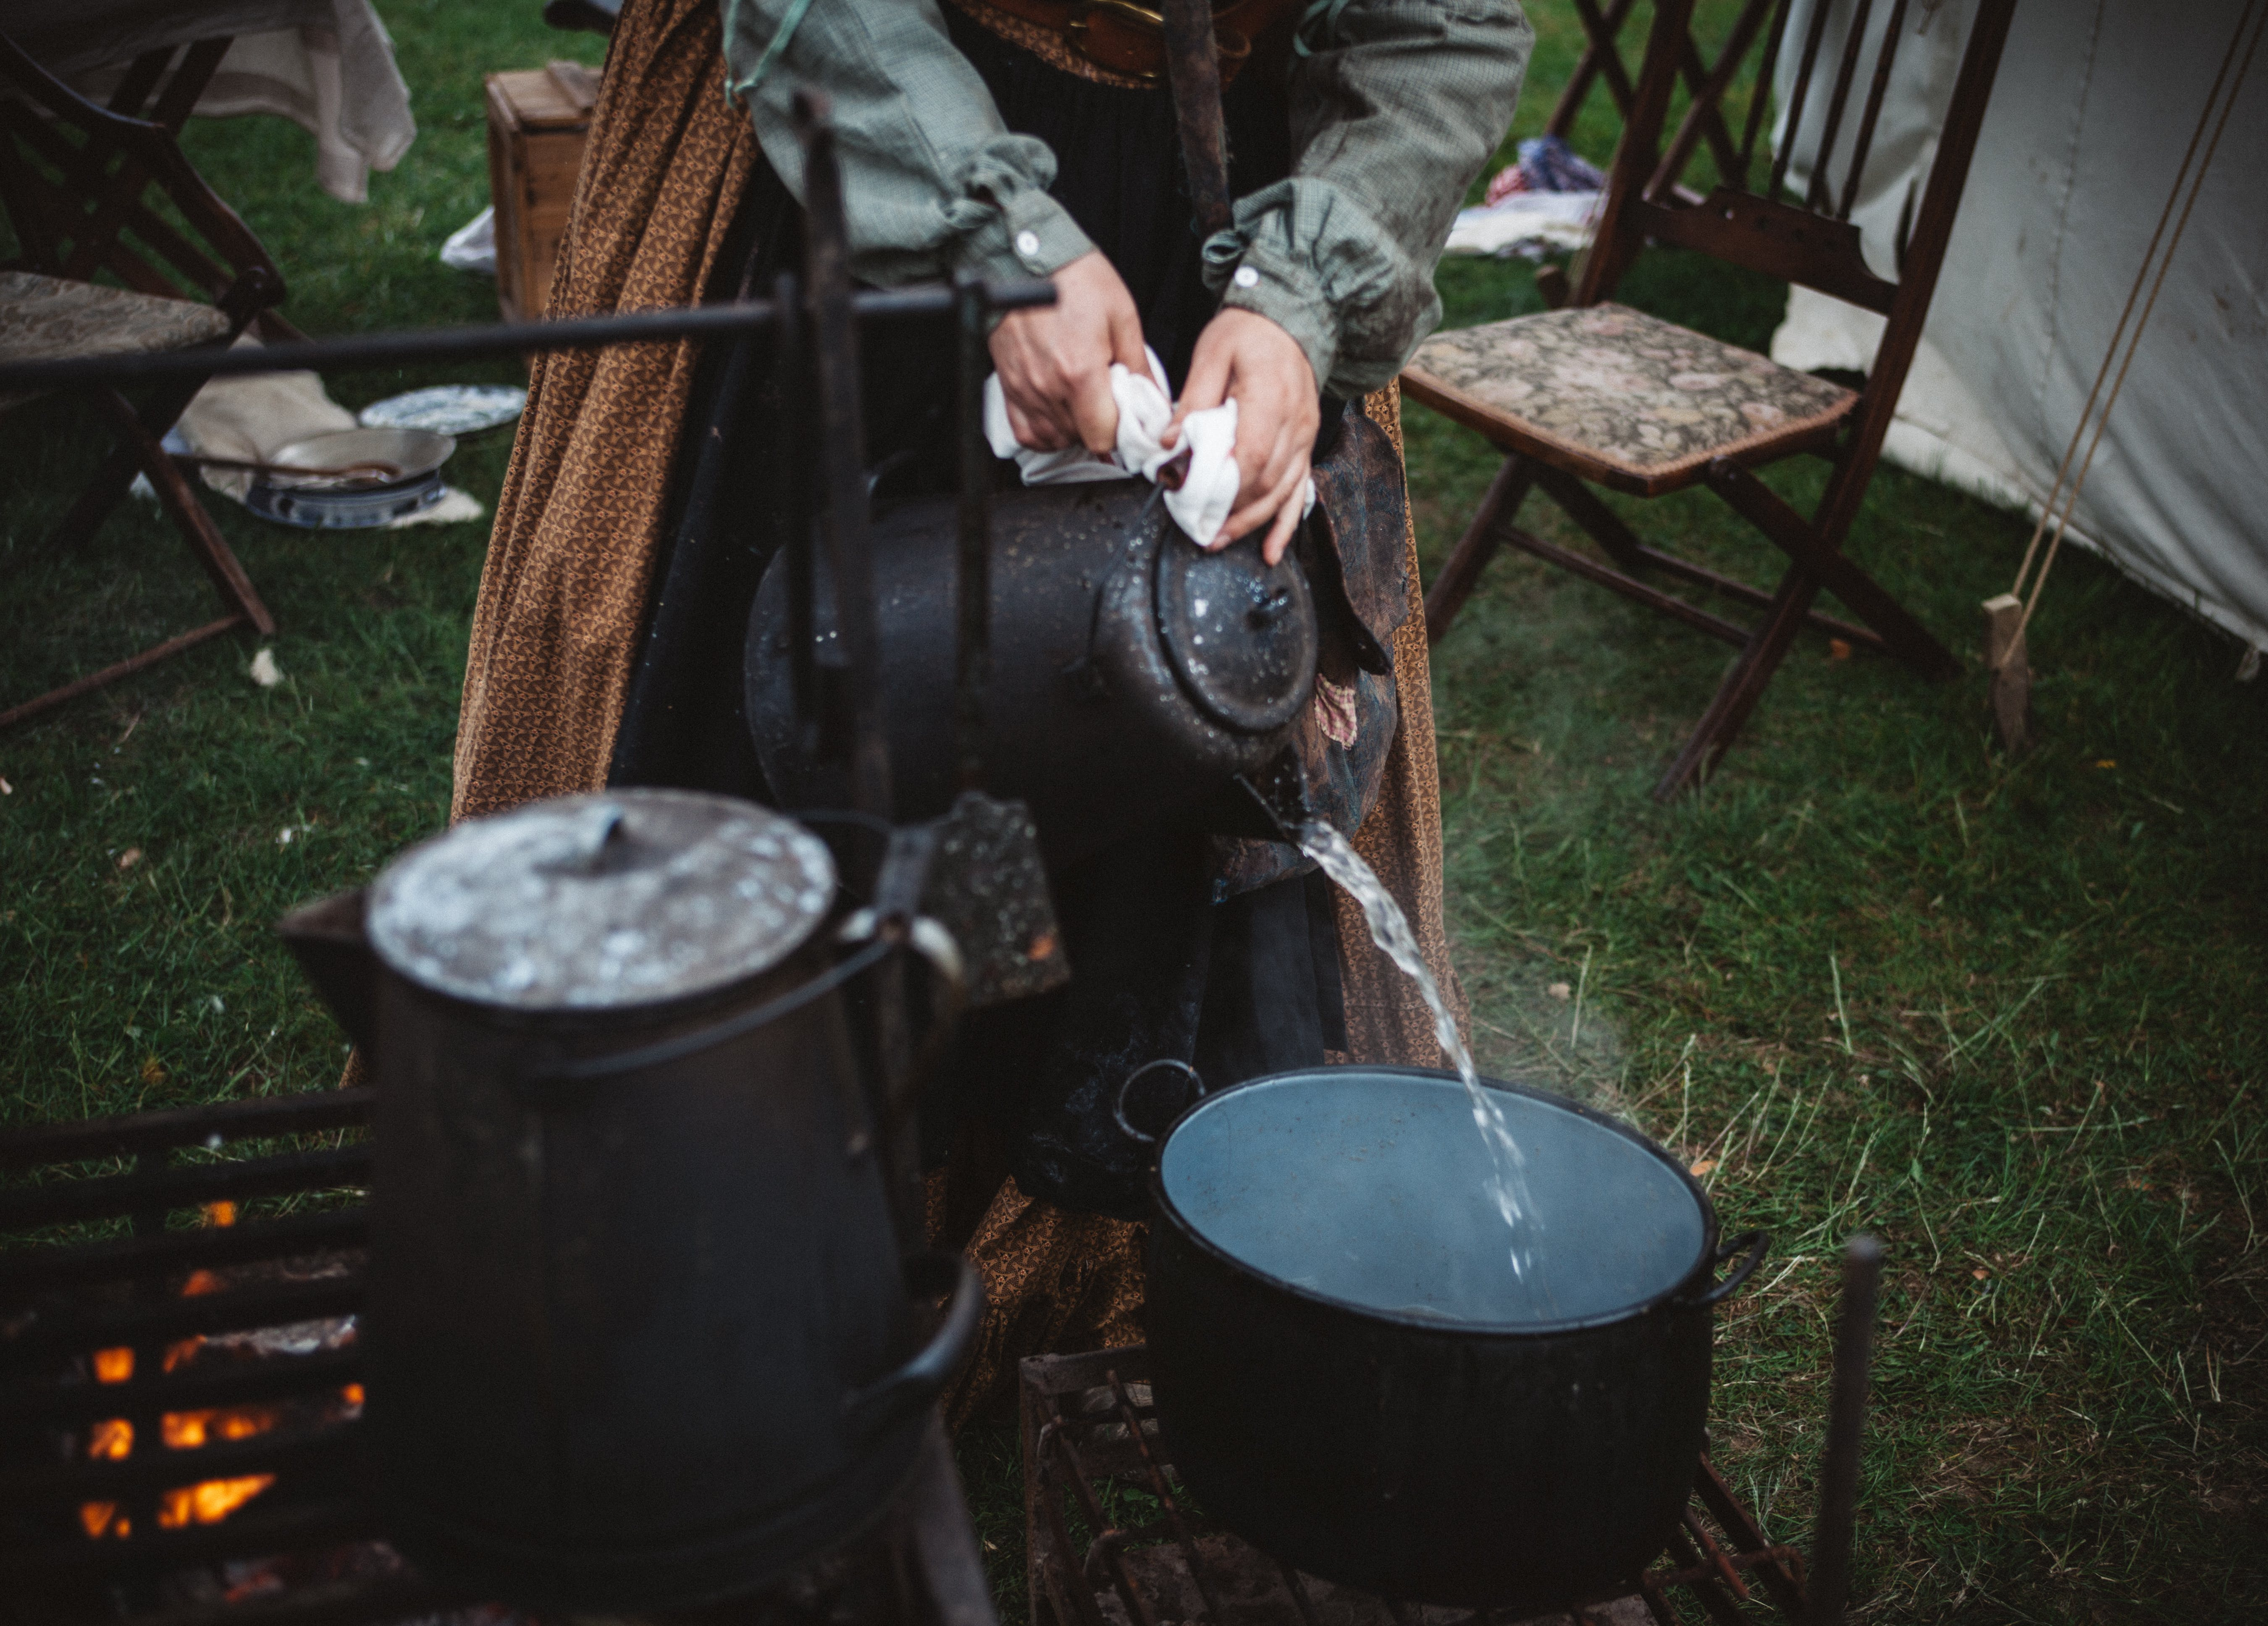 Person Pouring Water on Cooking Pot